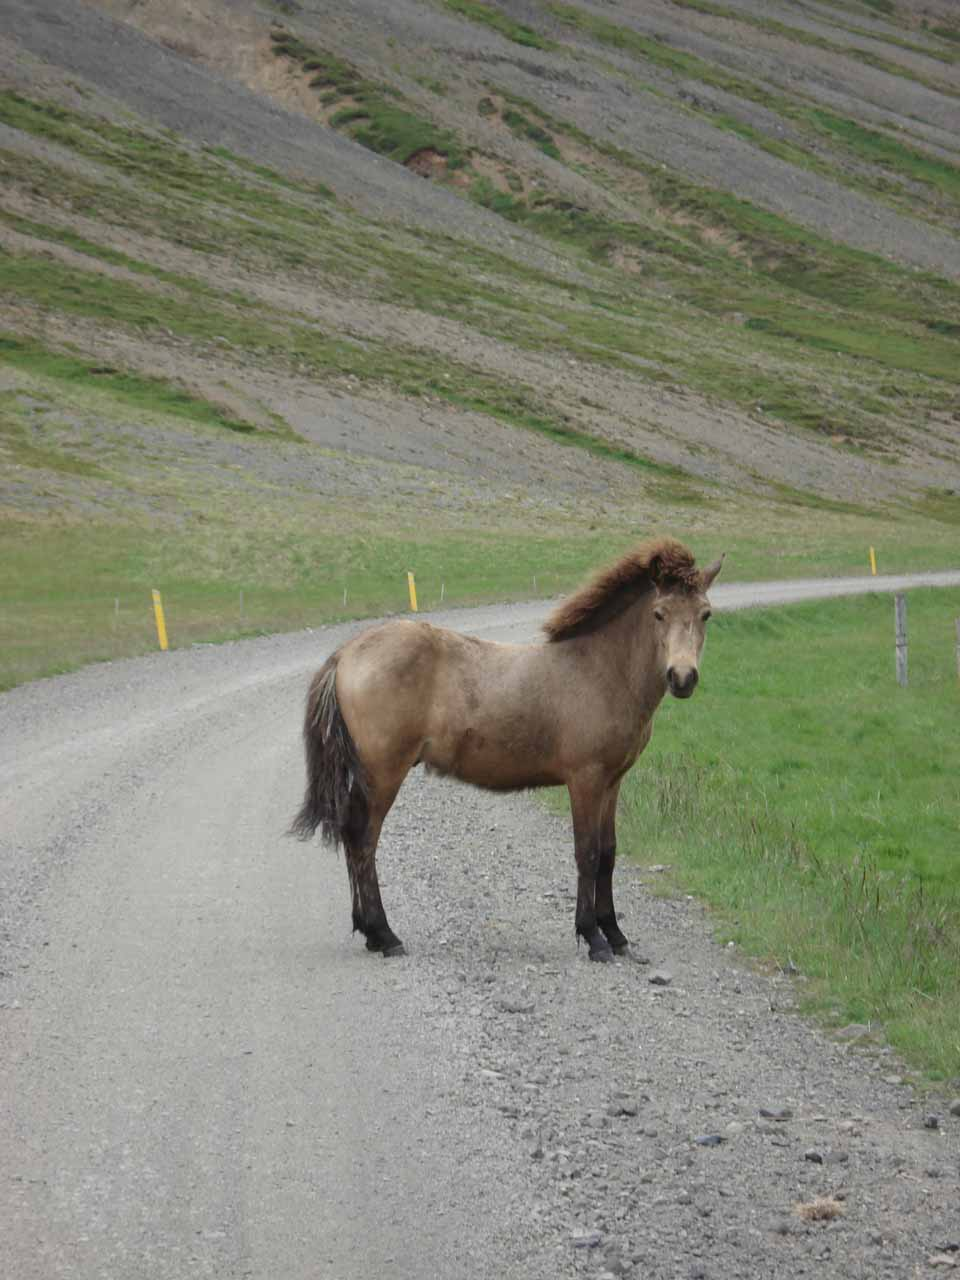 This beautiful Icelandic horse didn't feel like moving out of the way